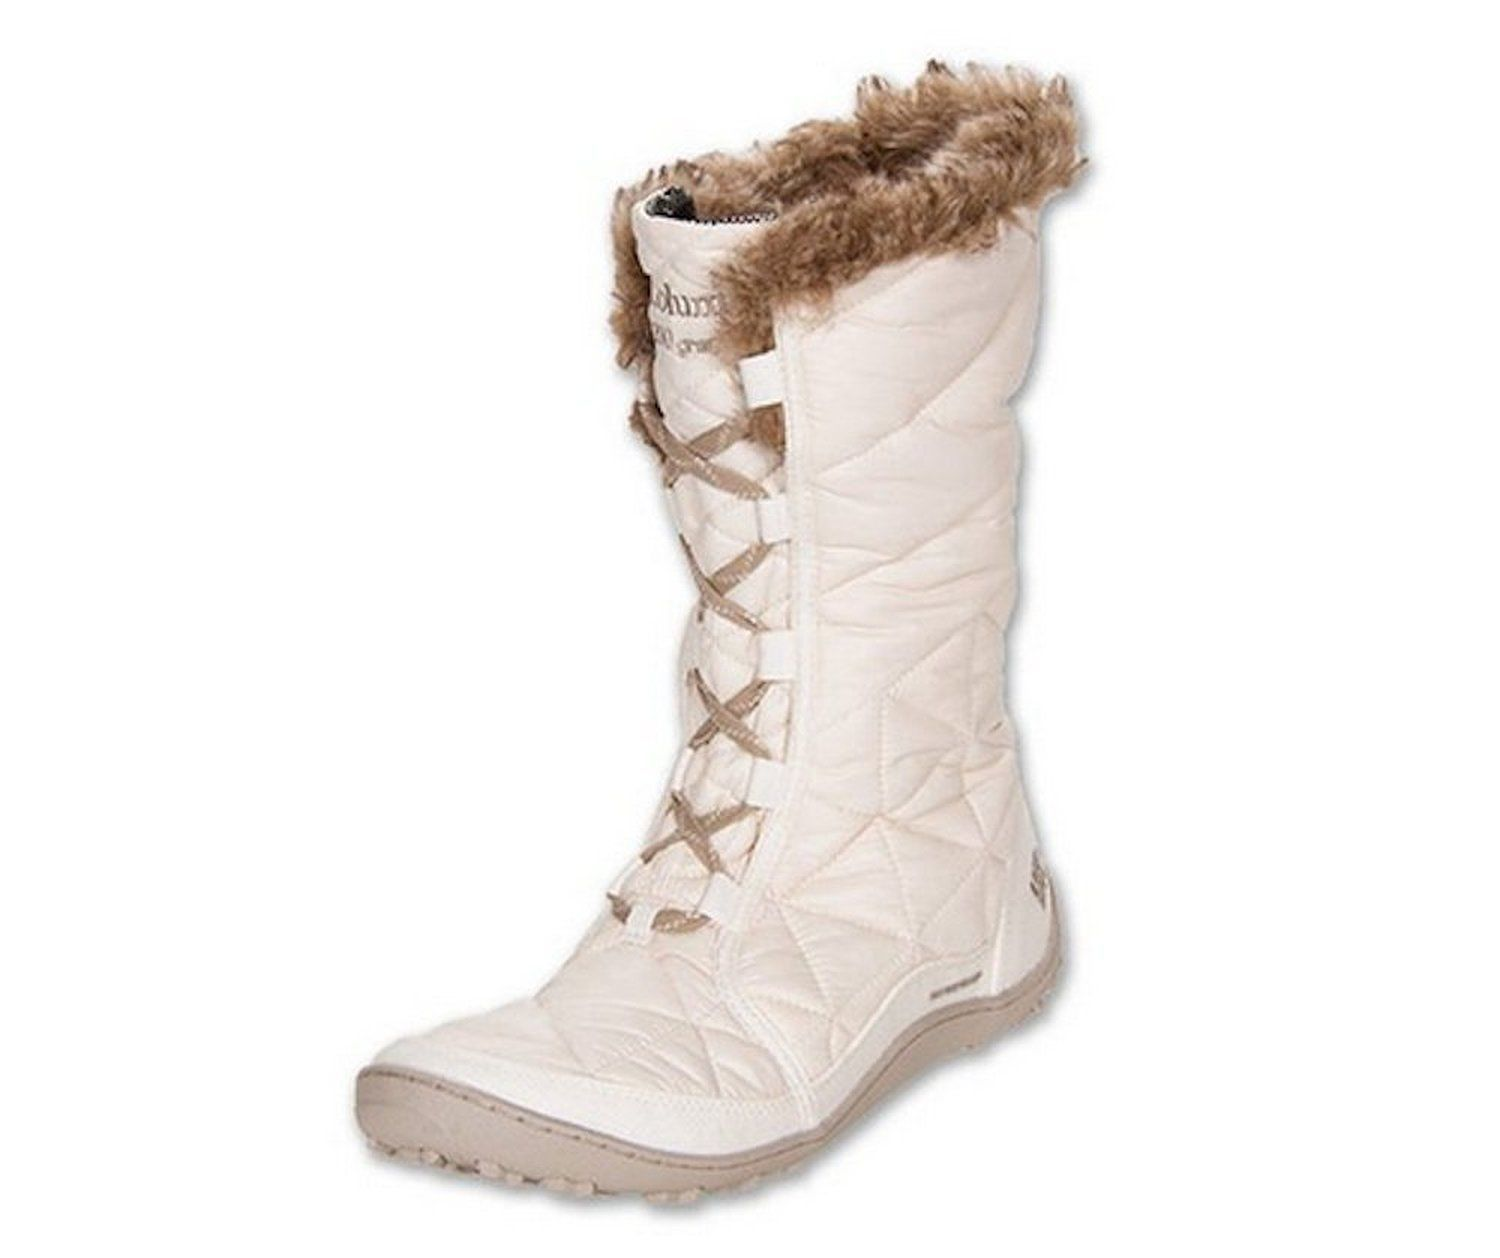 Primary image for COLUMBIA POWDER SUMMIT OMNI-TECH WOMEN'S IVORY WATERPROOF BOOTS 9.5, #YL5164-139